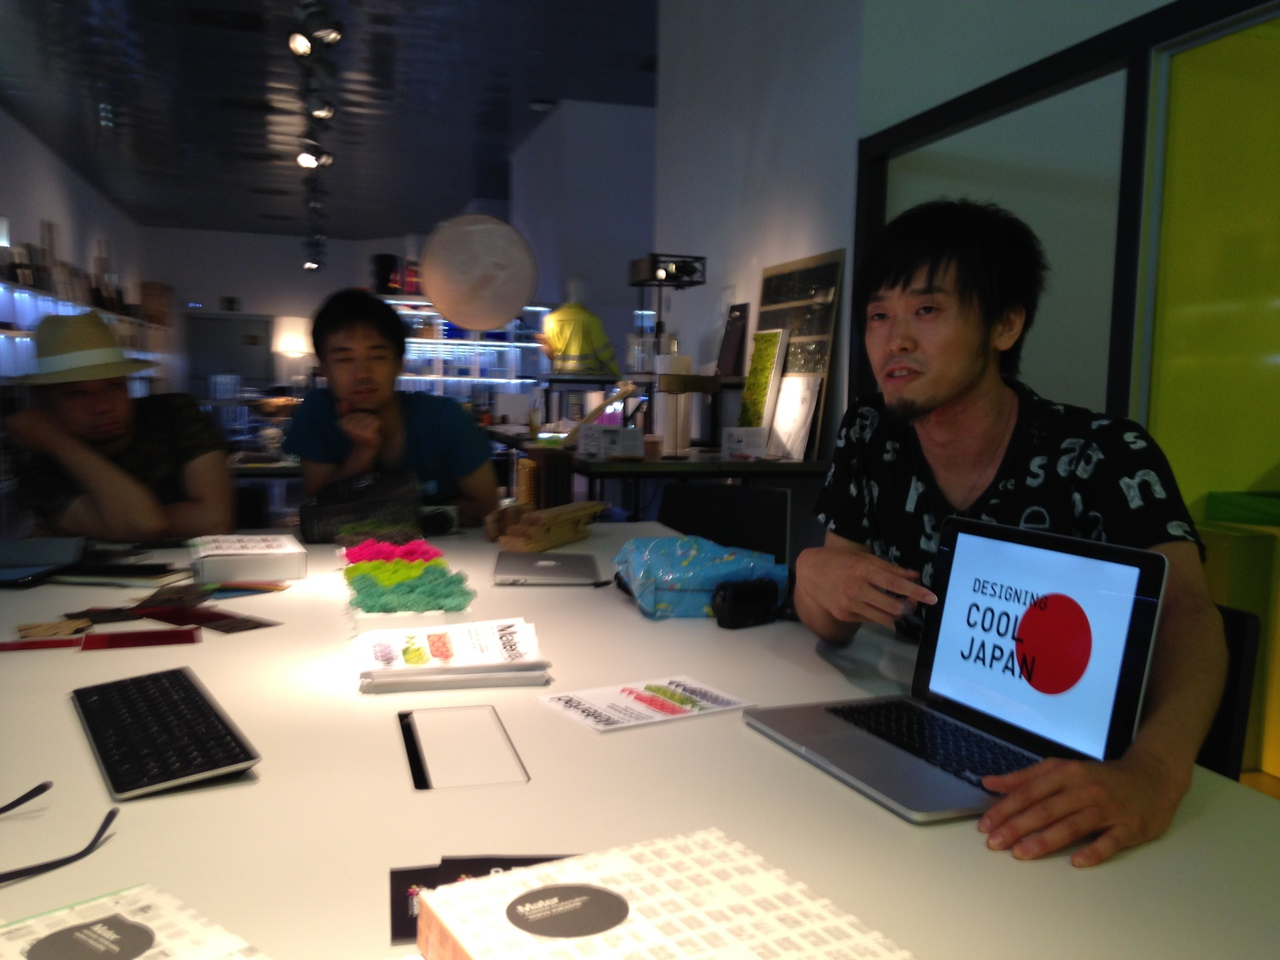 "Cool Japan revised at Hasekura 2.0 mission: Social Designer Eisuke Tachikawa (NOSIGNER) explains the new concept behind the revised ""Cool Japan"" at MATERFAD Material Library, Design HUB, Barcelona."